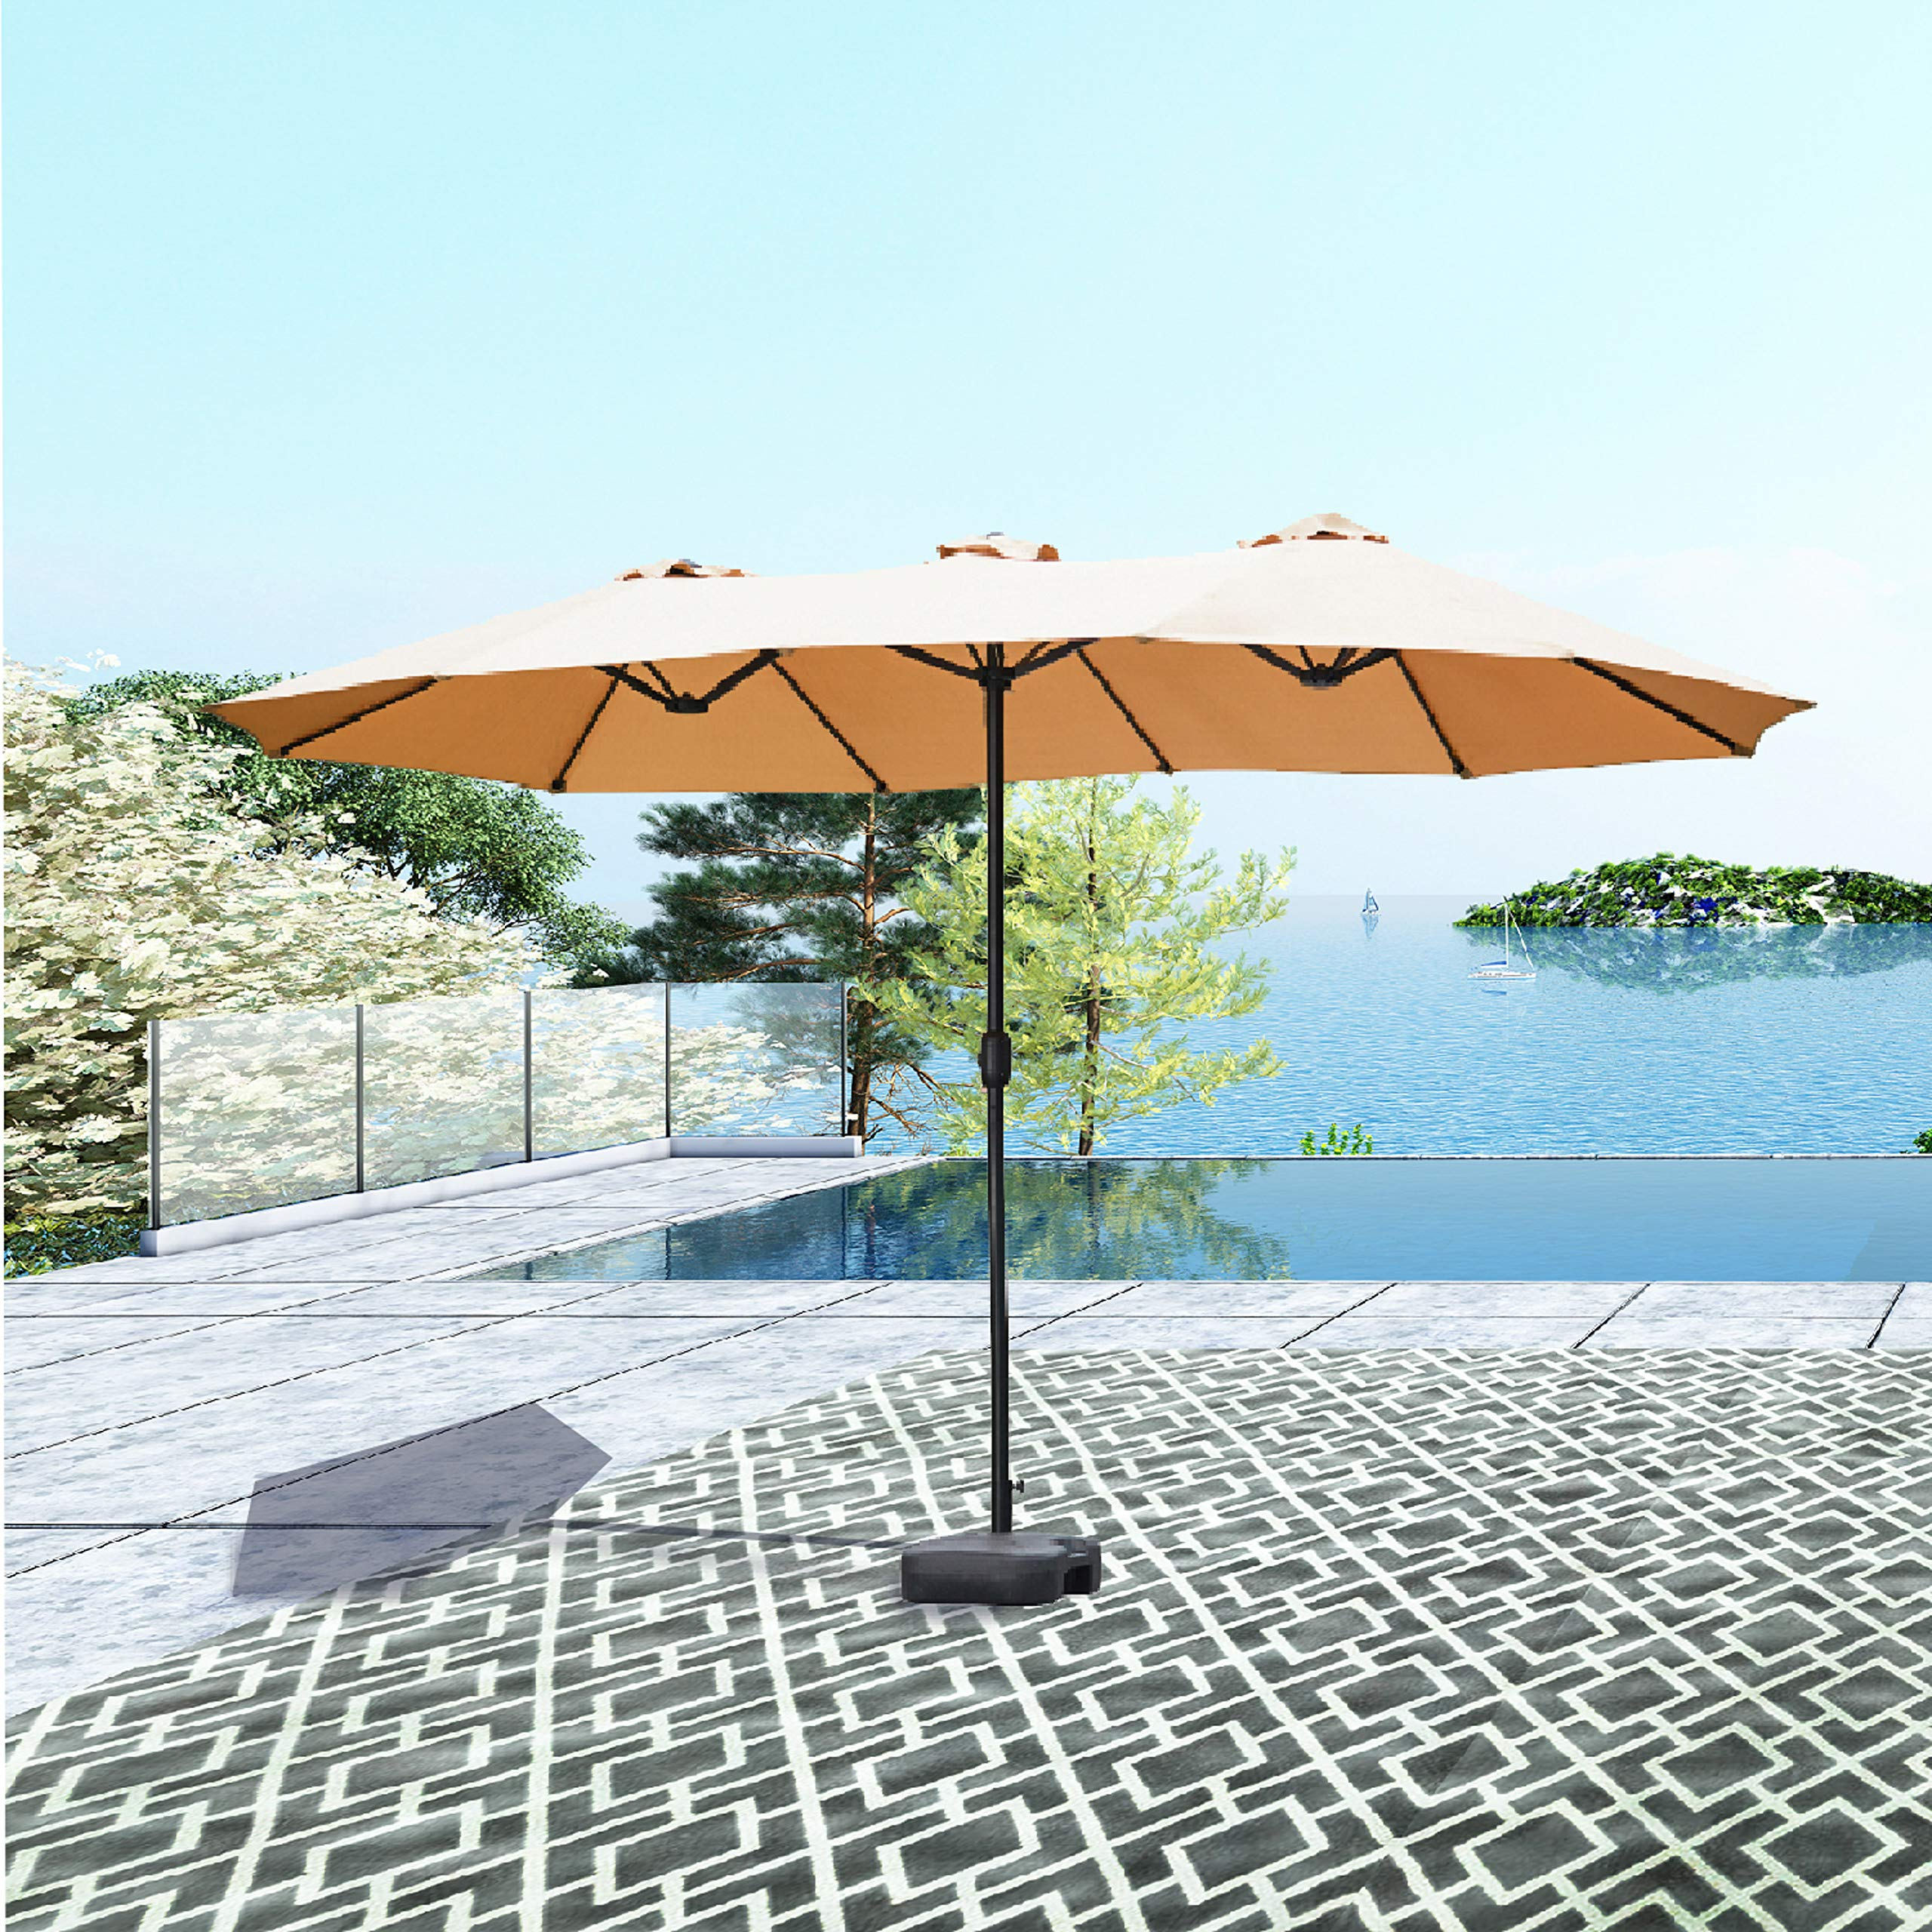 Patio Festival ® Double-Sided Outdoor Umbrella,15x9 ft Aluminum Garden Large Umbrella with Tilt and Crank for Market,Camping,Swimming Pool (Middle, Khaki) by Patio Festival ®